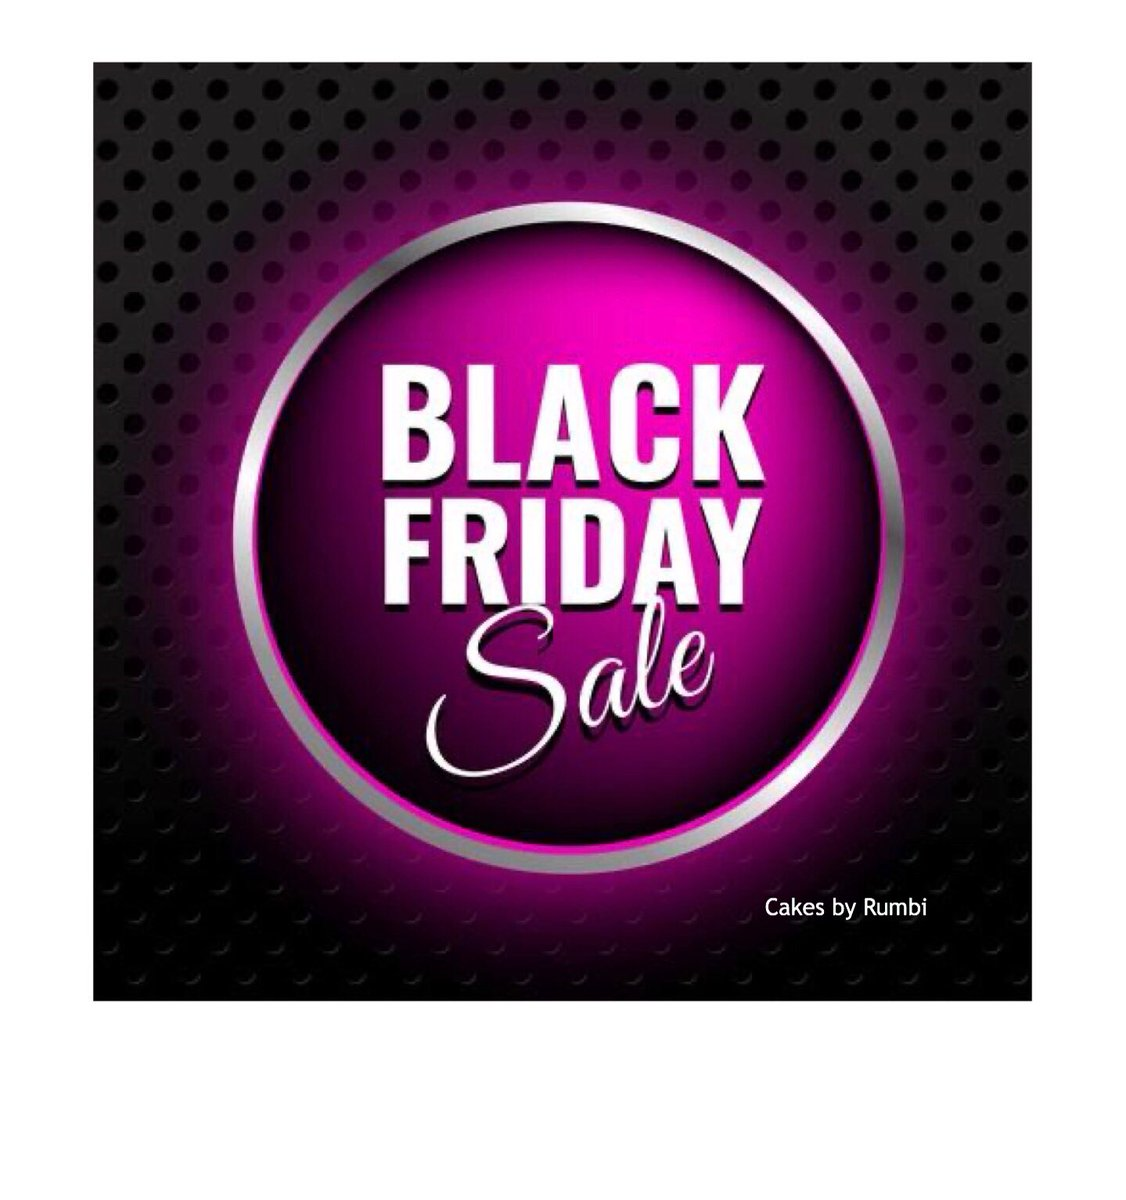 #OurPerfectWedding   Black Friday Sale November 29|Get 21%off any drip cake normally priced at R500 you only pay R395|whatspp 083 347 3666